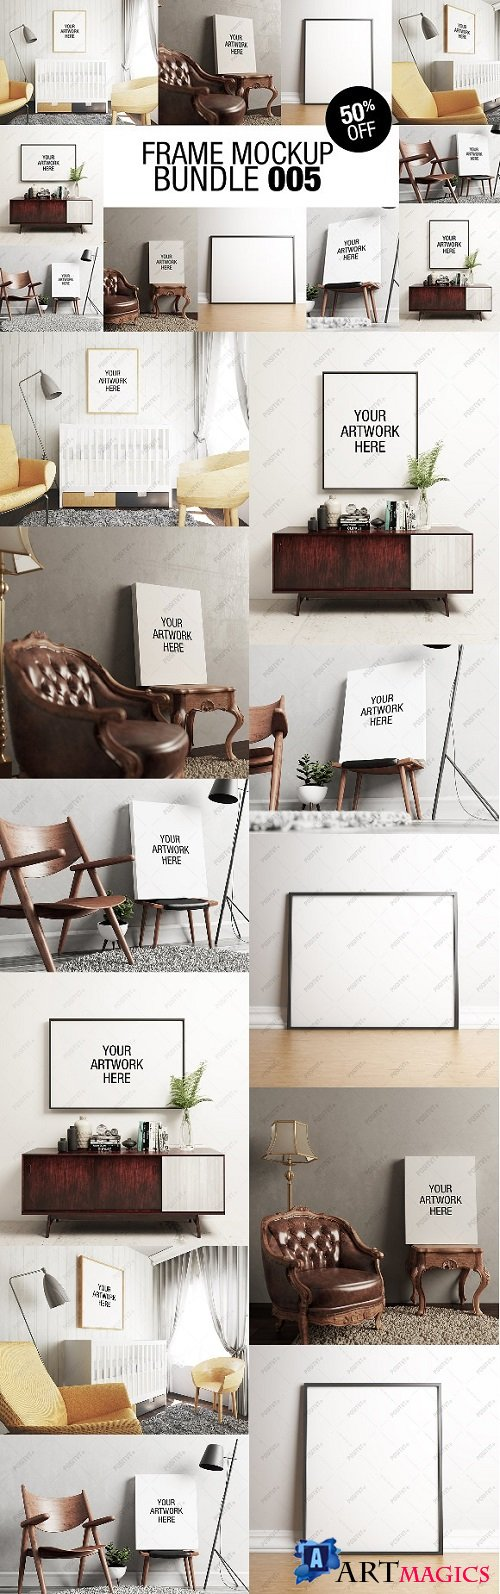 Frame Mockup Bundle 005 1647222